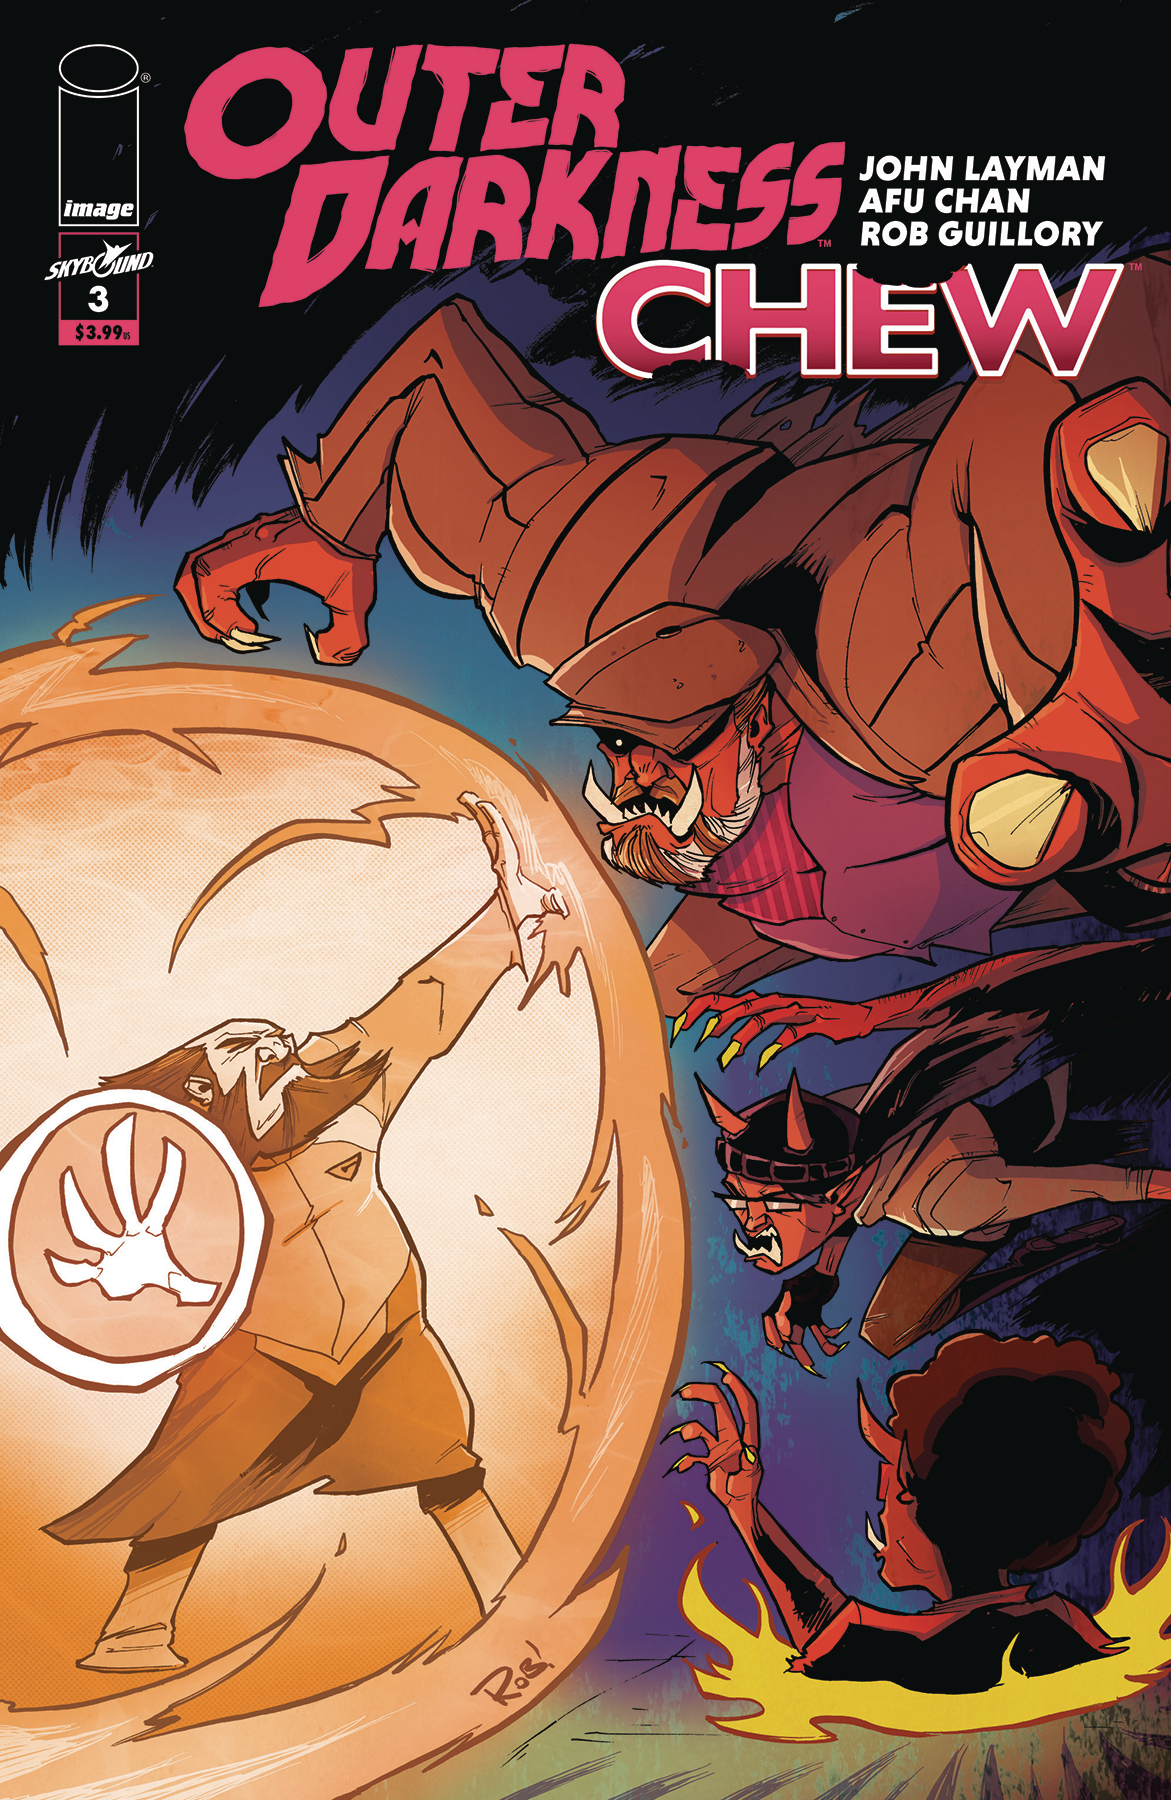 OUTER DARKNESS CHEW #3 (OF 3) CVR B GUILLORY (MR)